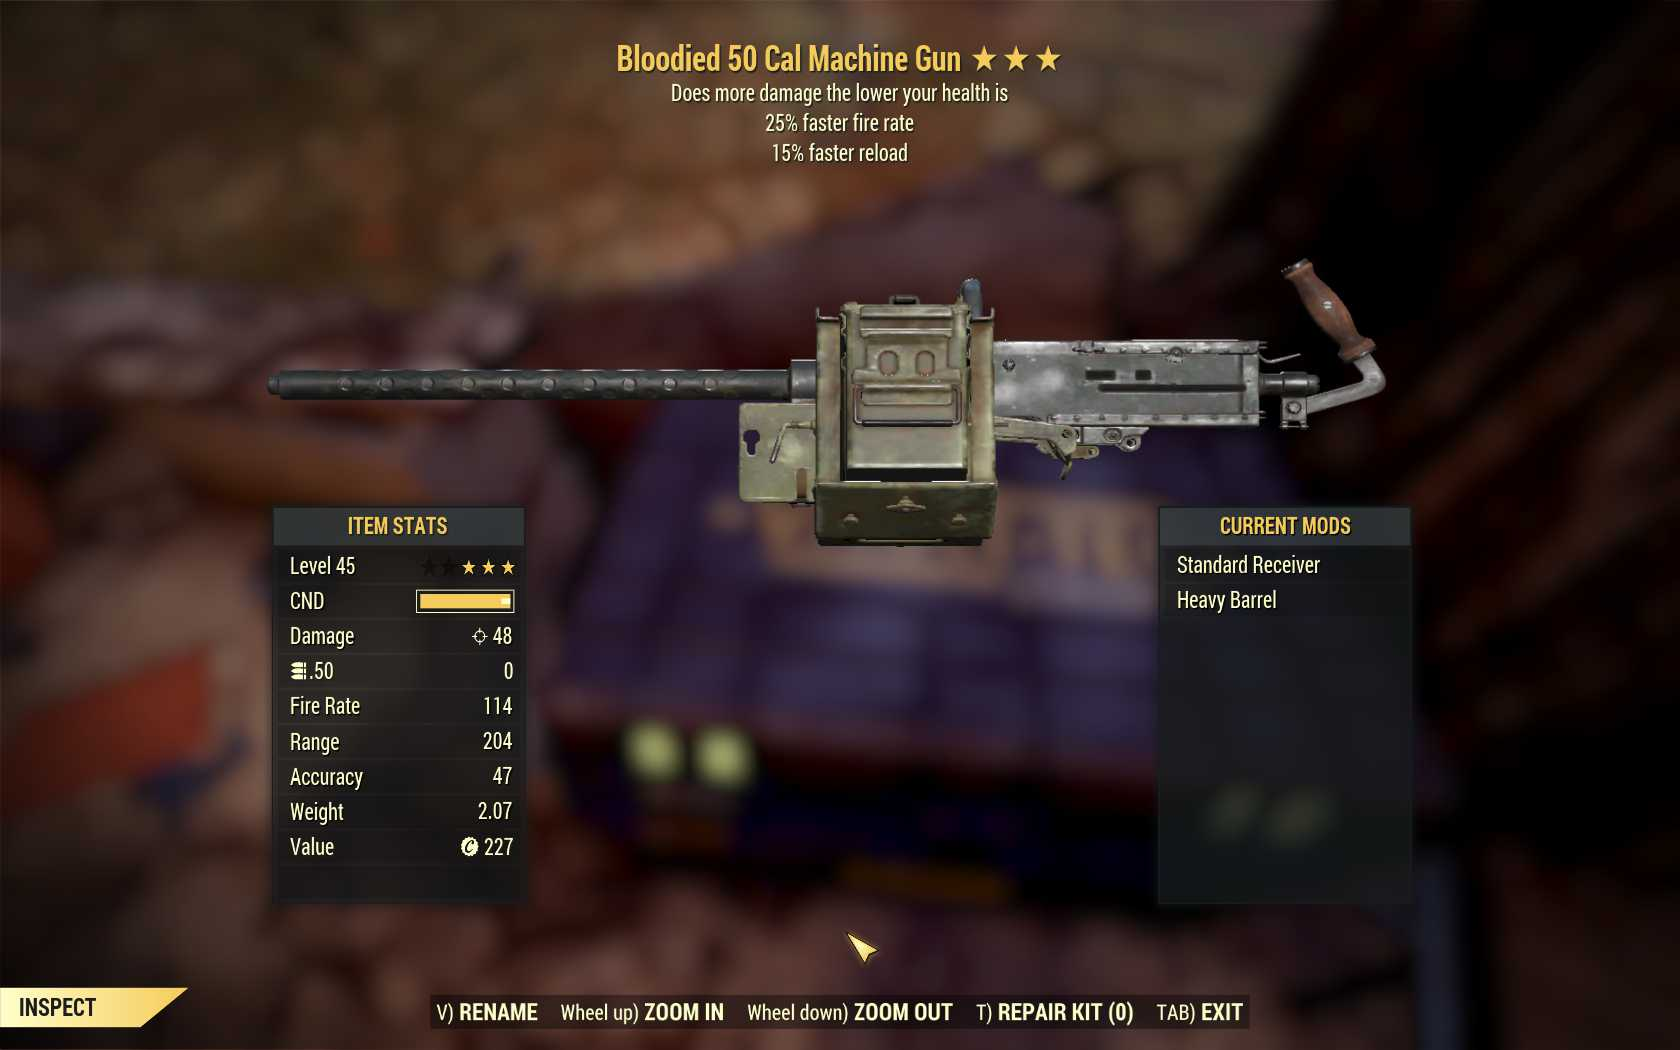 Bloodied 50 Cal Machine Gun (25% faster fire rate, 15% faster reload)